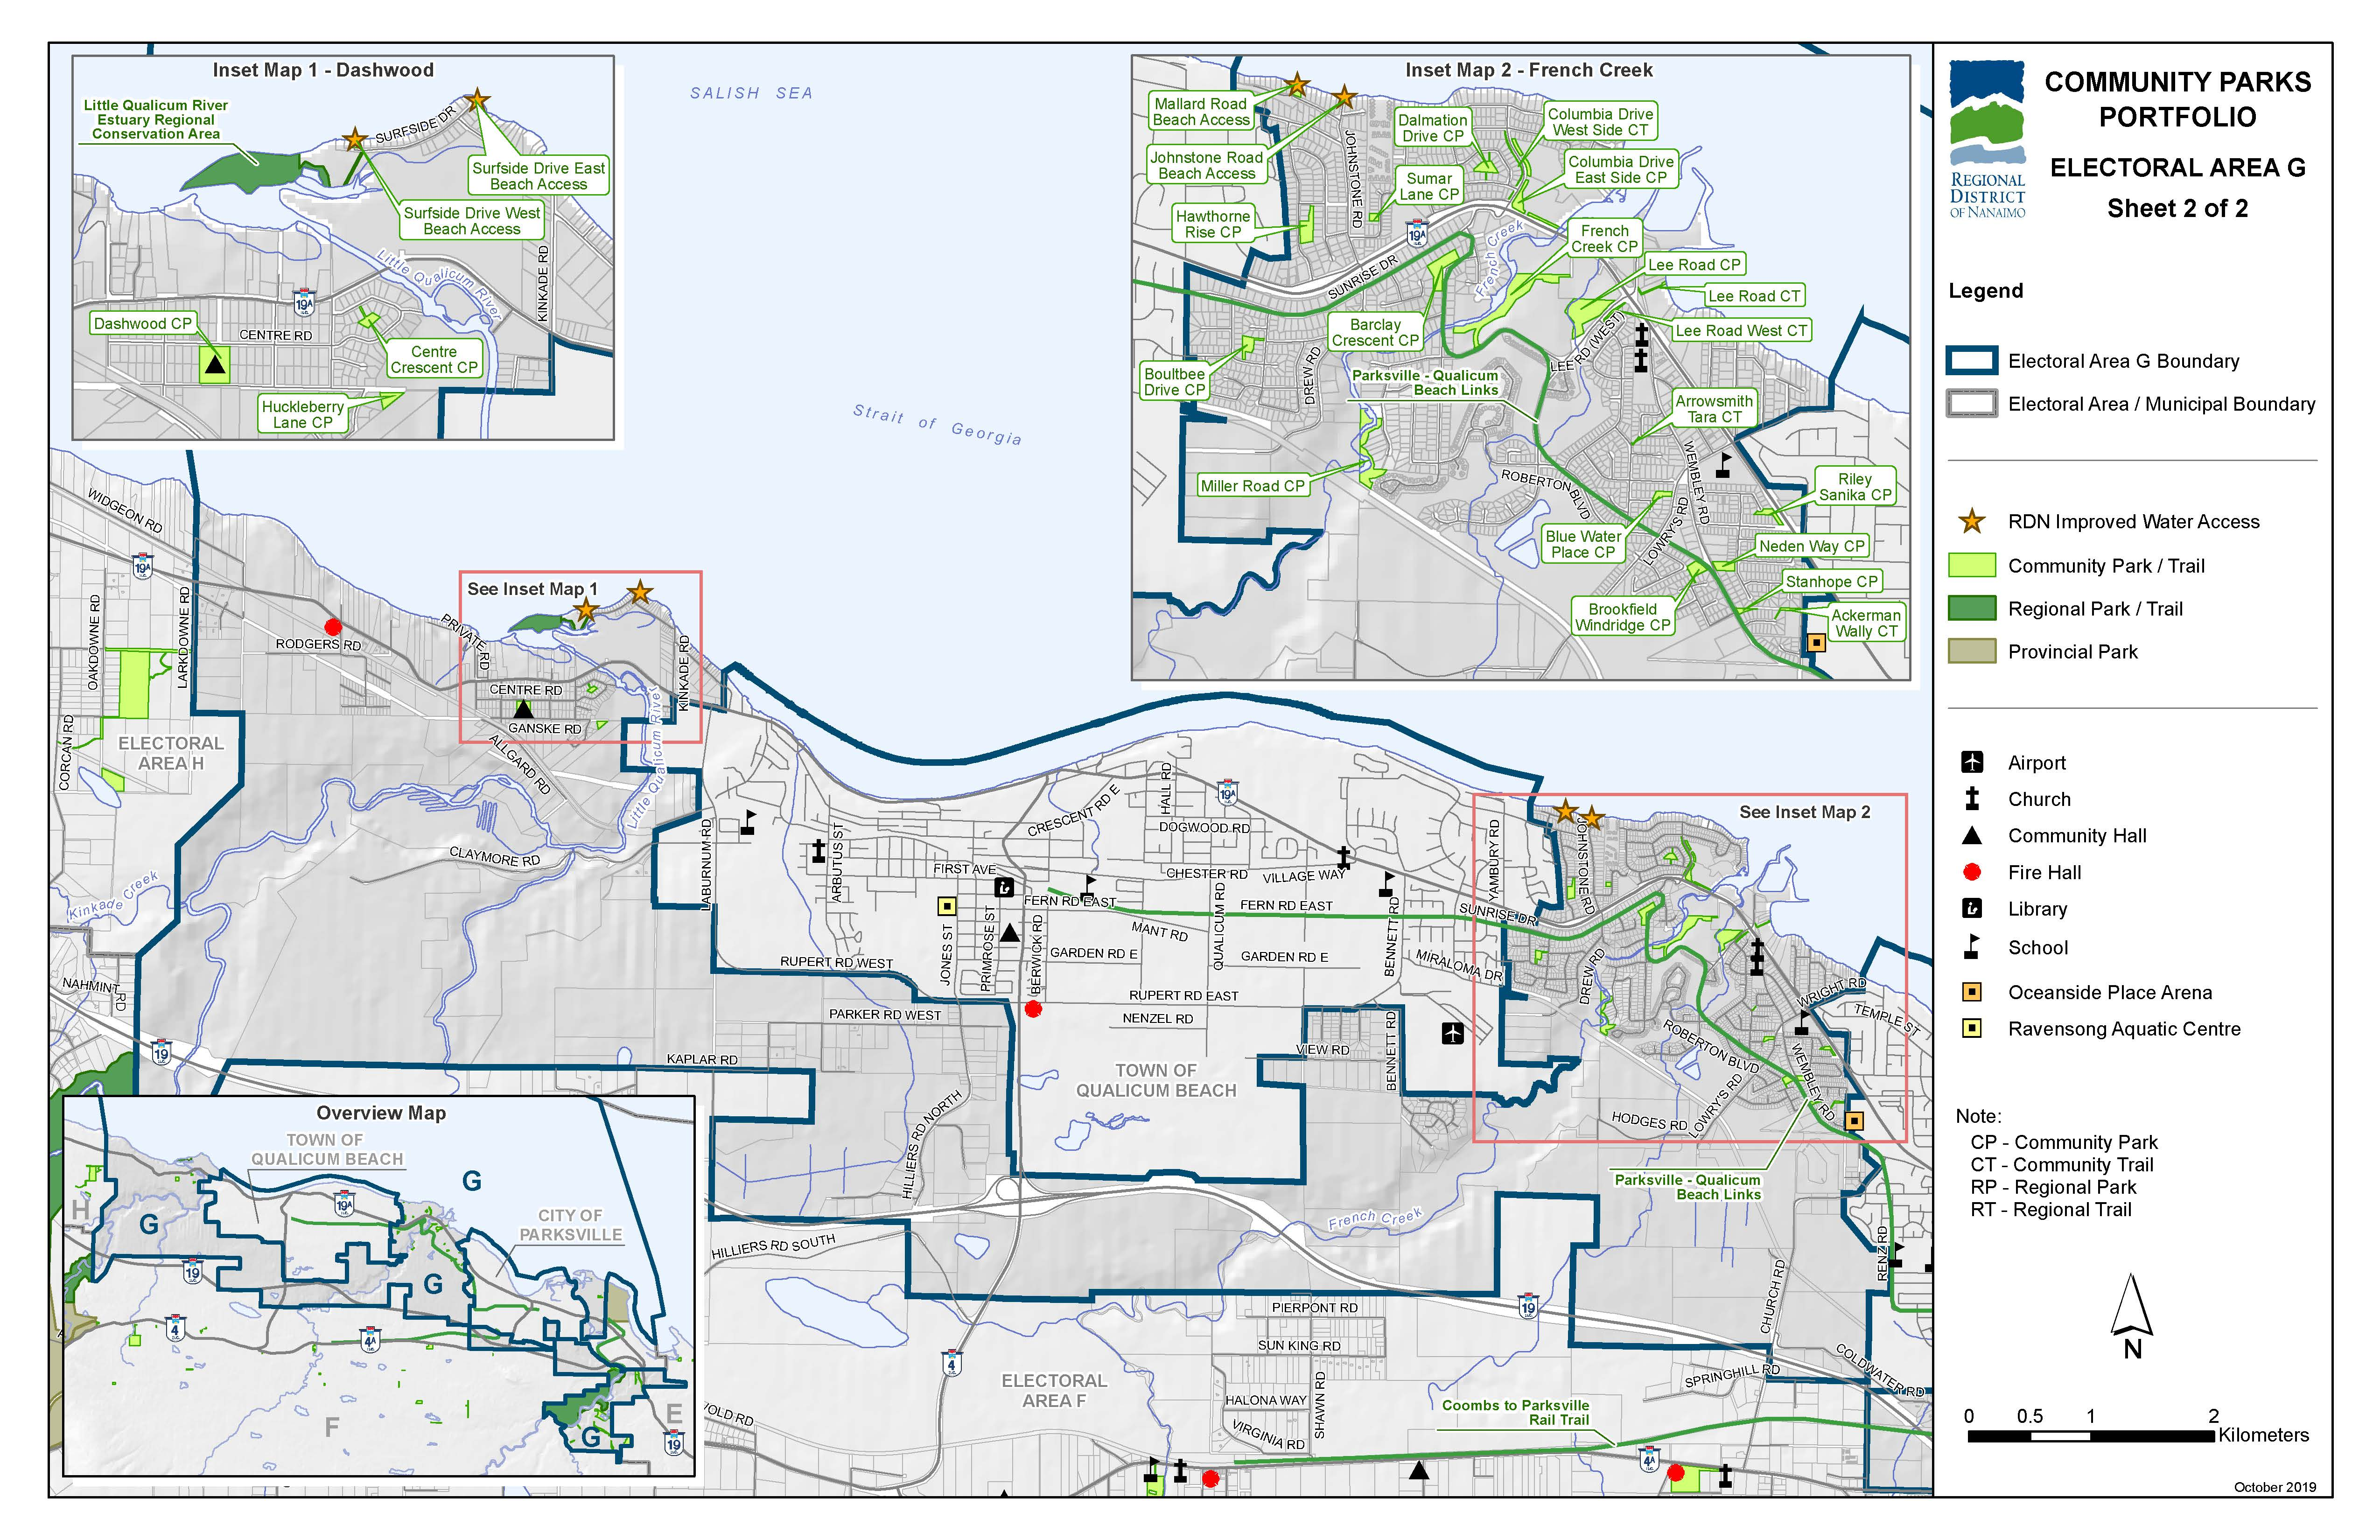 Community Parks and Trails in Area G (West)